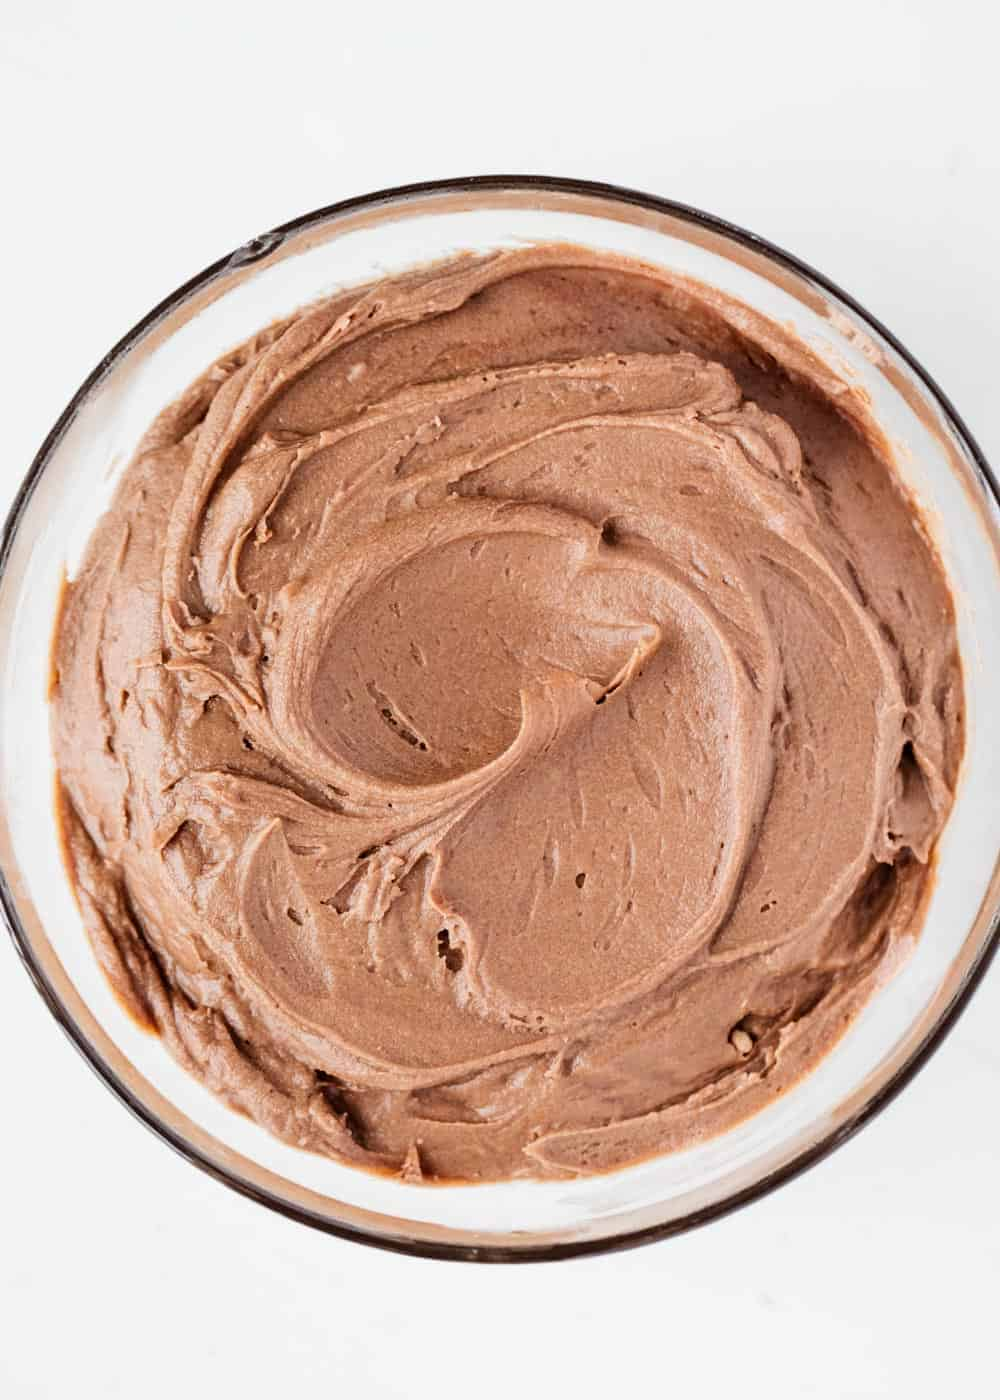 chocolate cream cheese frosting in a glass bowl